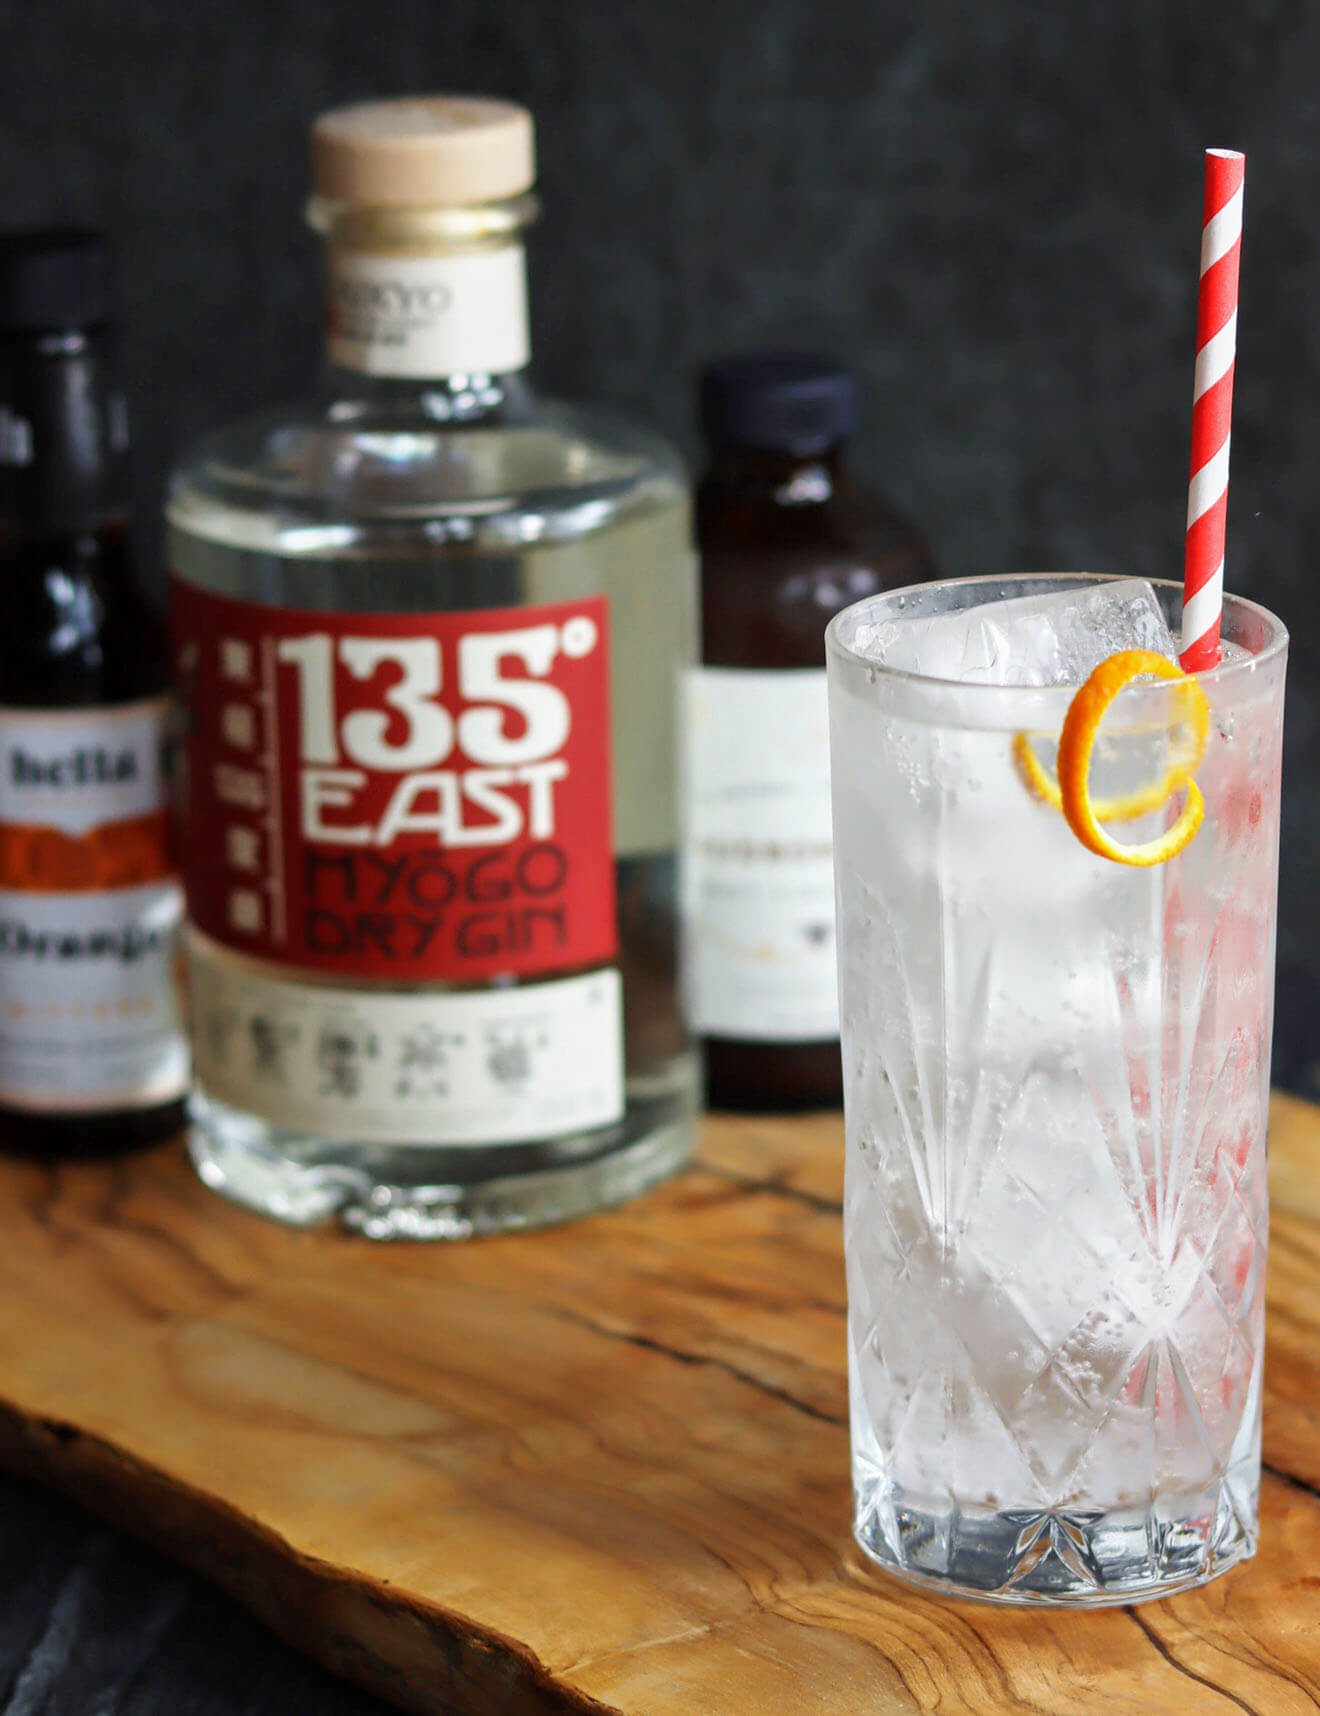 135 East Gin & Tonic, bottle and cocktail